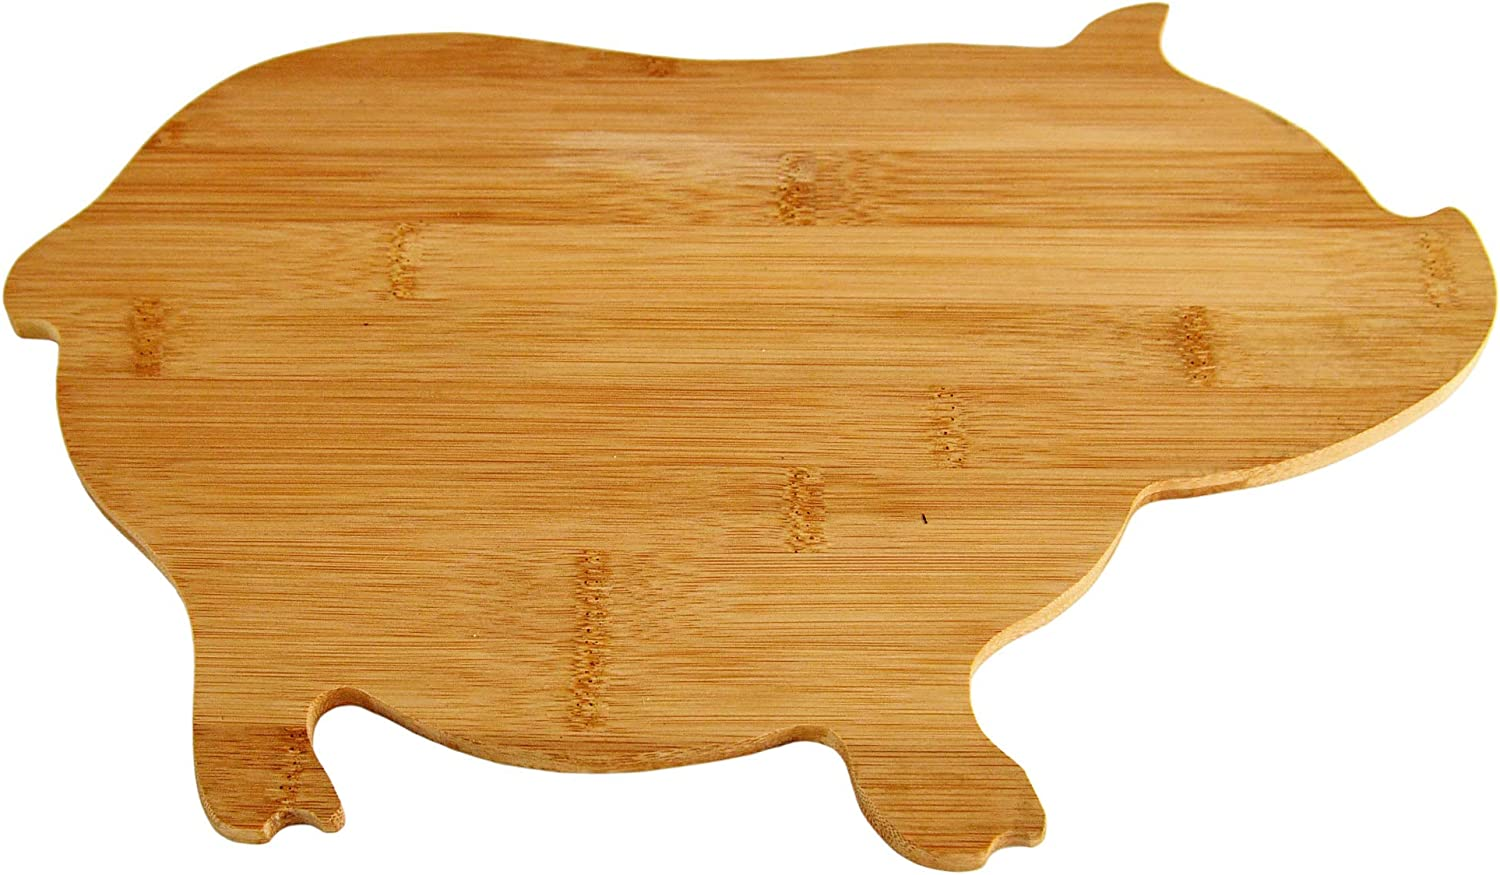 """HOME-X Pig-Shaped Bamboo Reversible Cutting Board and Serving Tray, Cheese Board, Kitchen Tray, or Fruit Platter-Natural Color-15 5/8"""" x 9 1/2"""" x 5/8"""""""